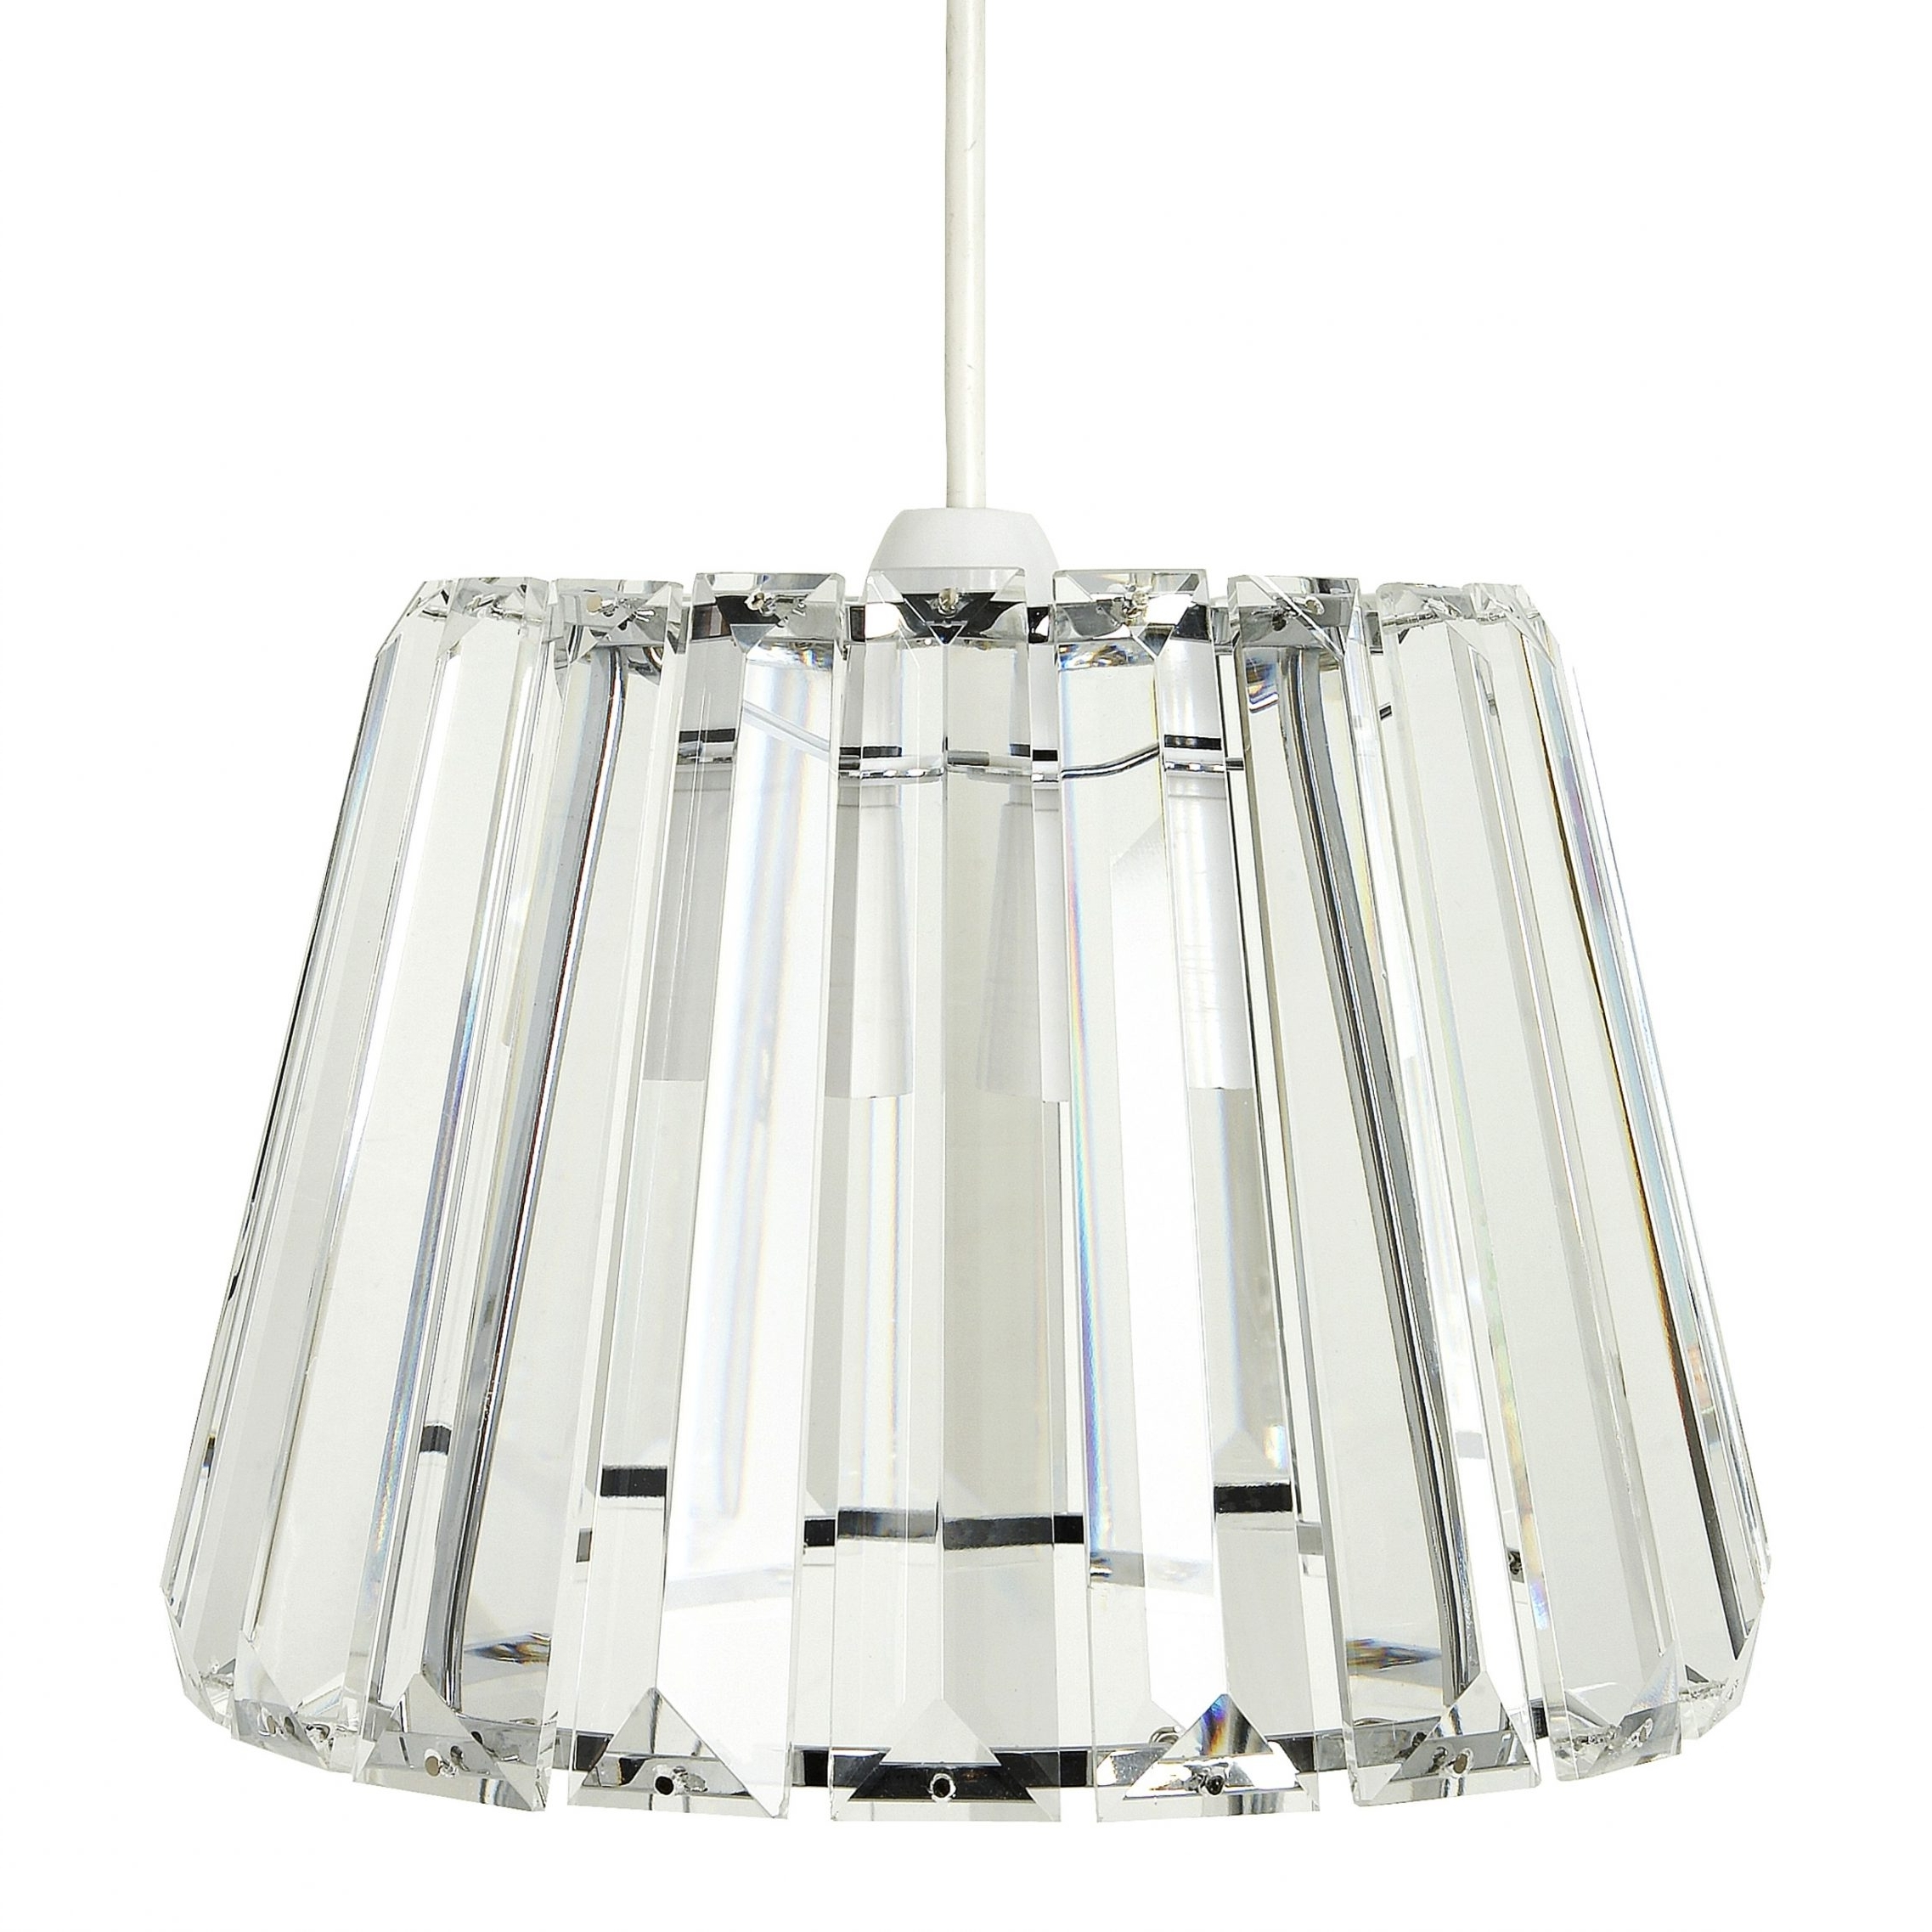 2019 Clip On Chandelier Lamp Shades With Regard To Clip On Chandelier Shades (View 1 of 20)